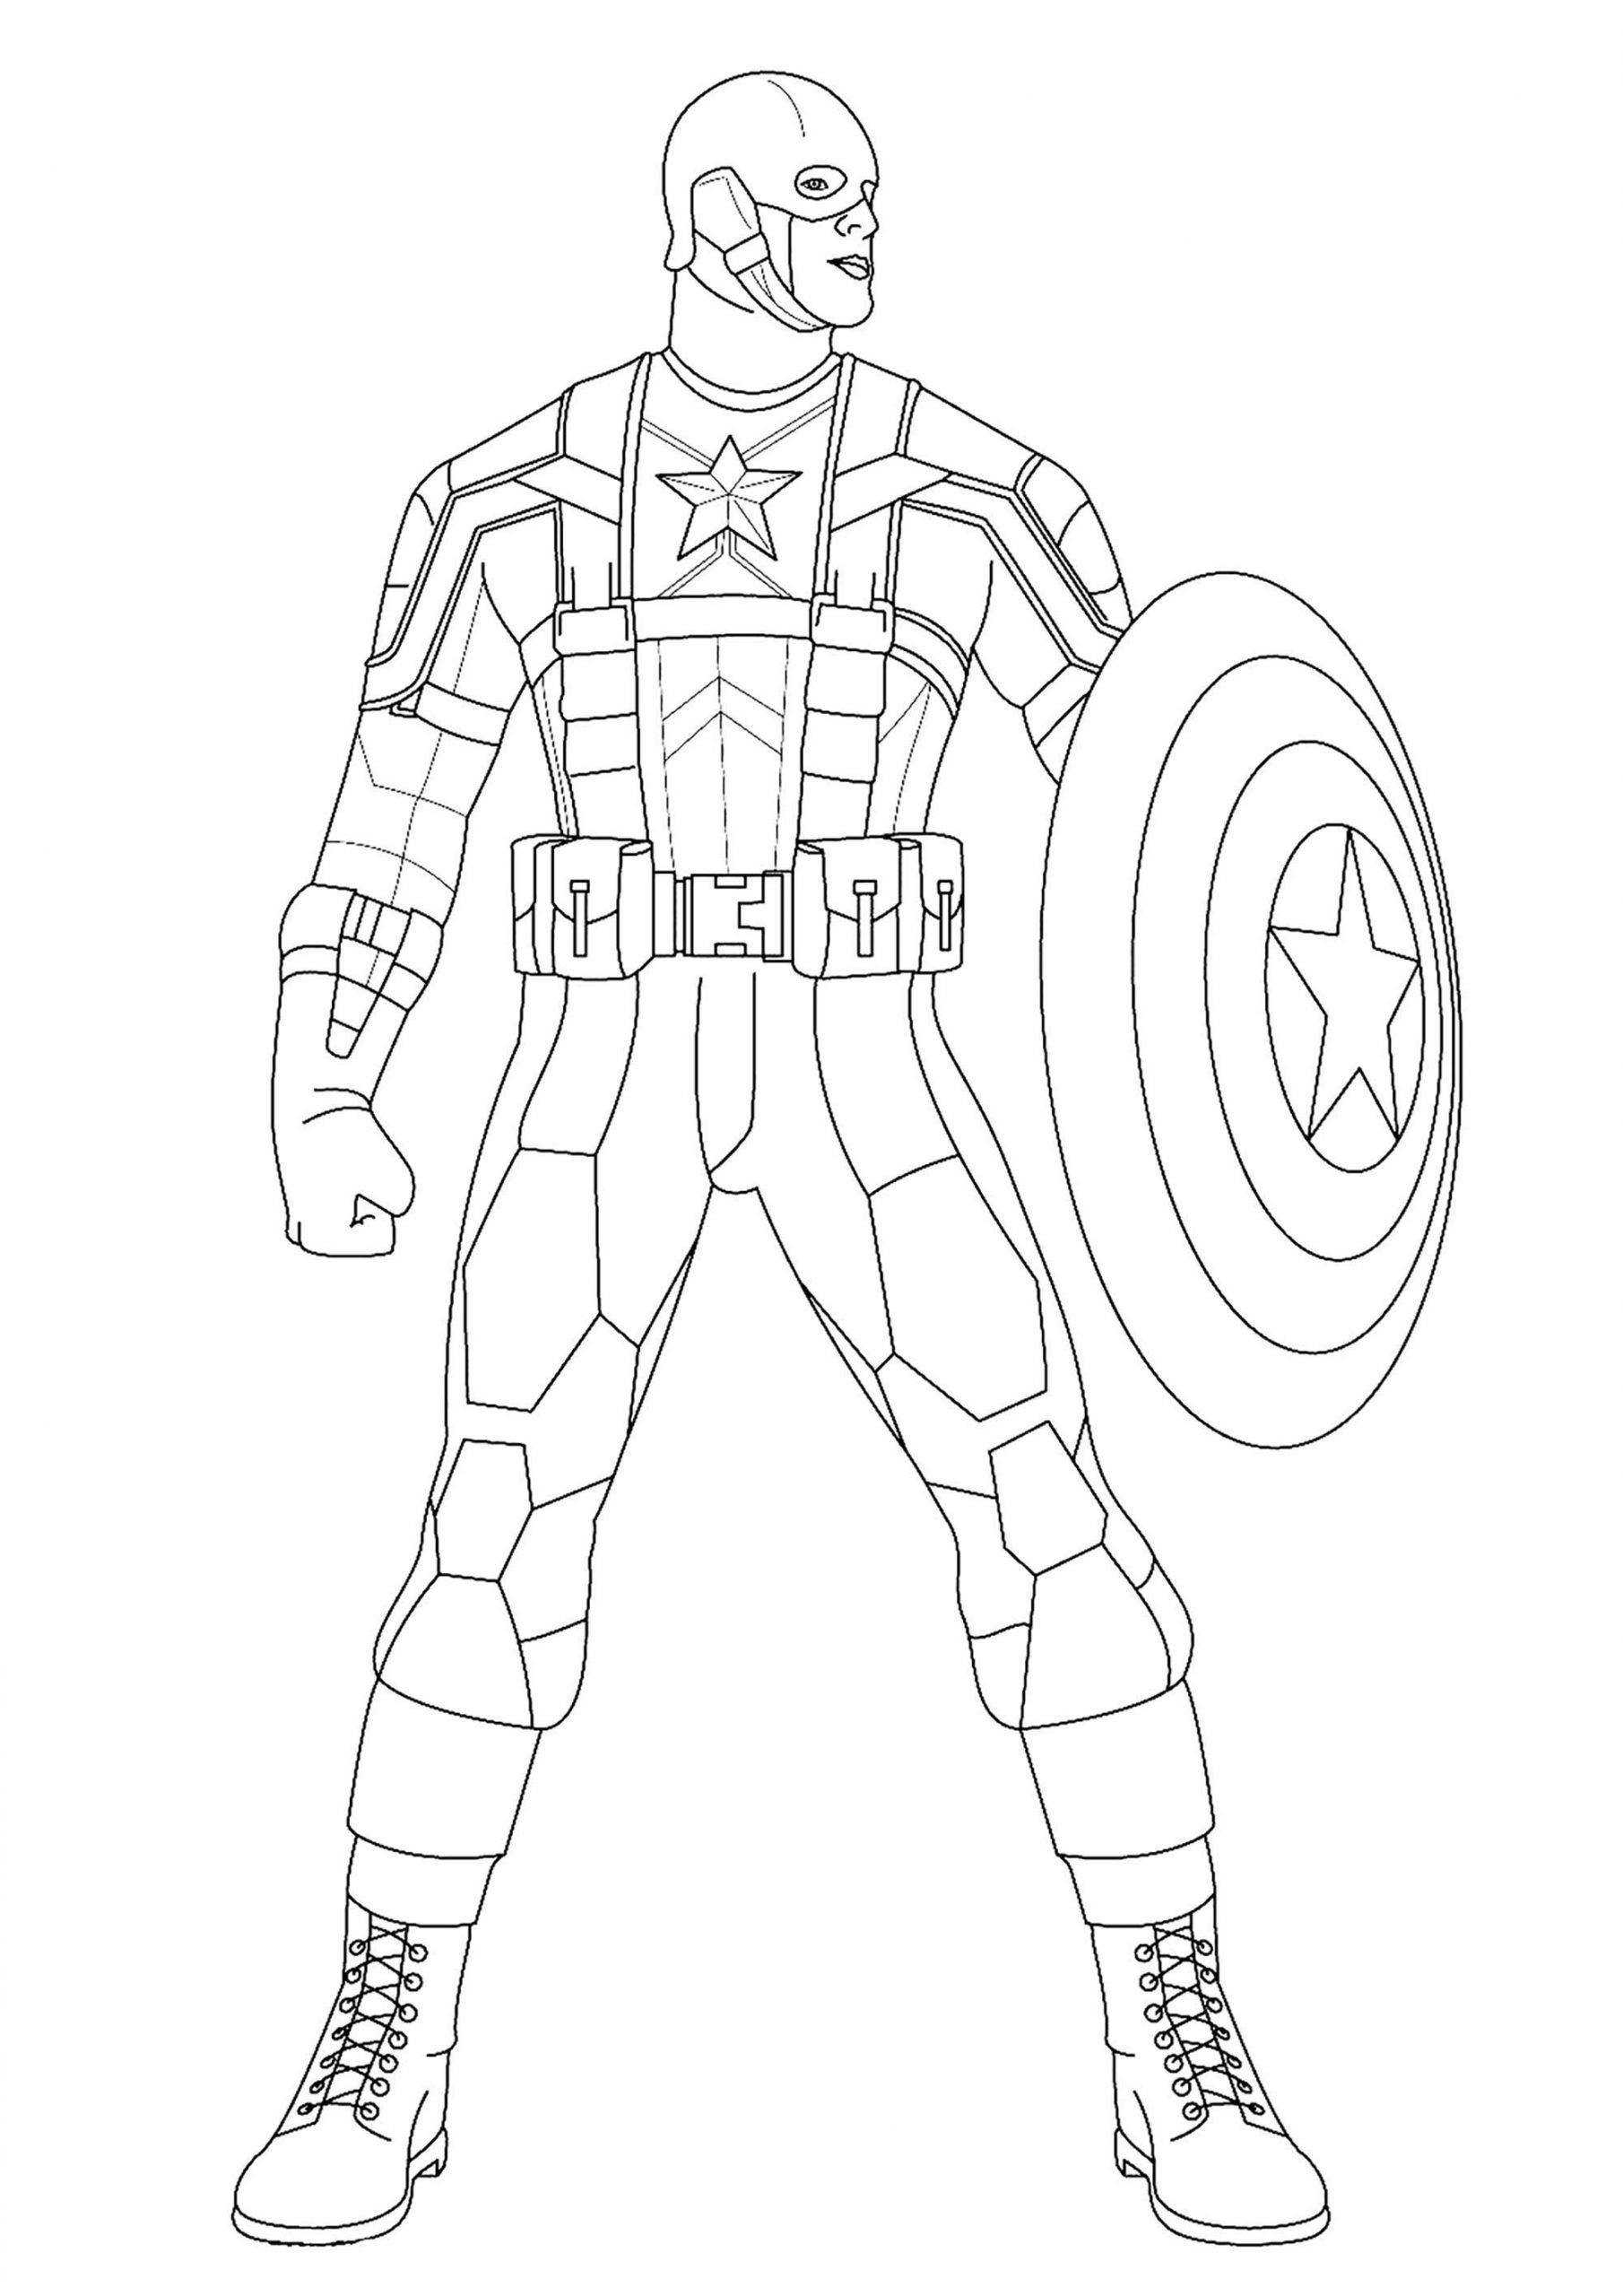 Captain America Coloring Sheet Captain America Captain America Kids Coloring Pa In 2020 Captain America Coloring Pages Superhero Coloring Pages Avengers Coloring Pages